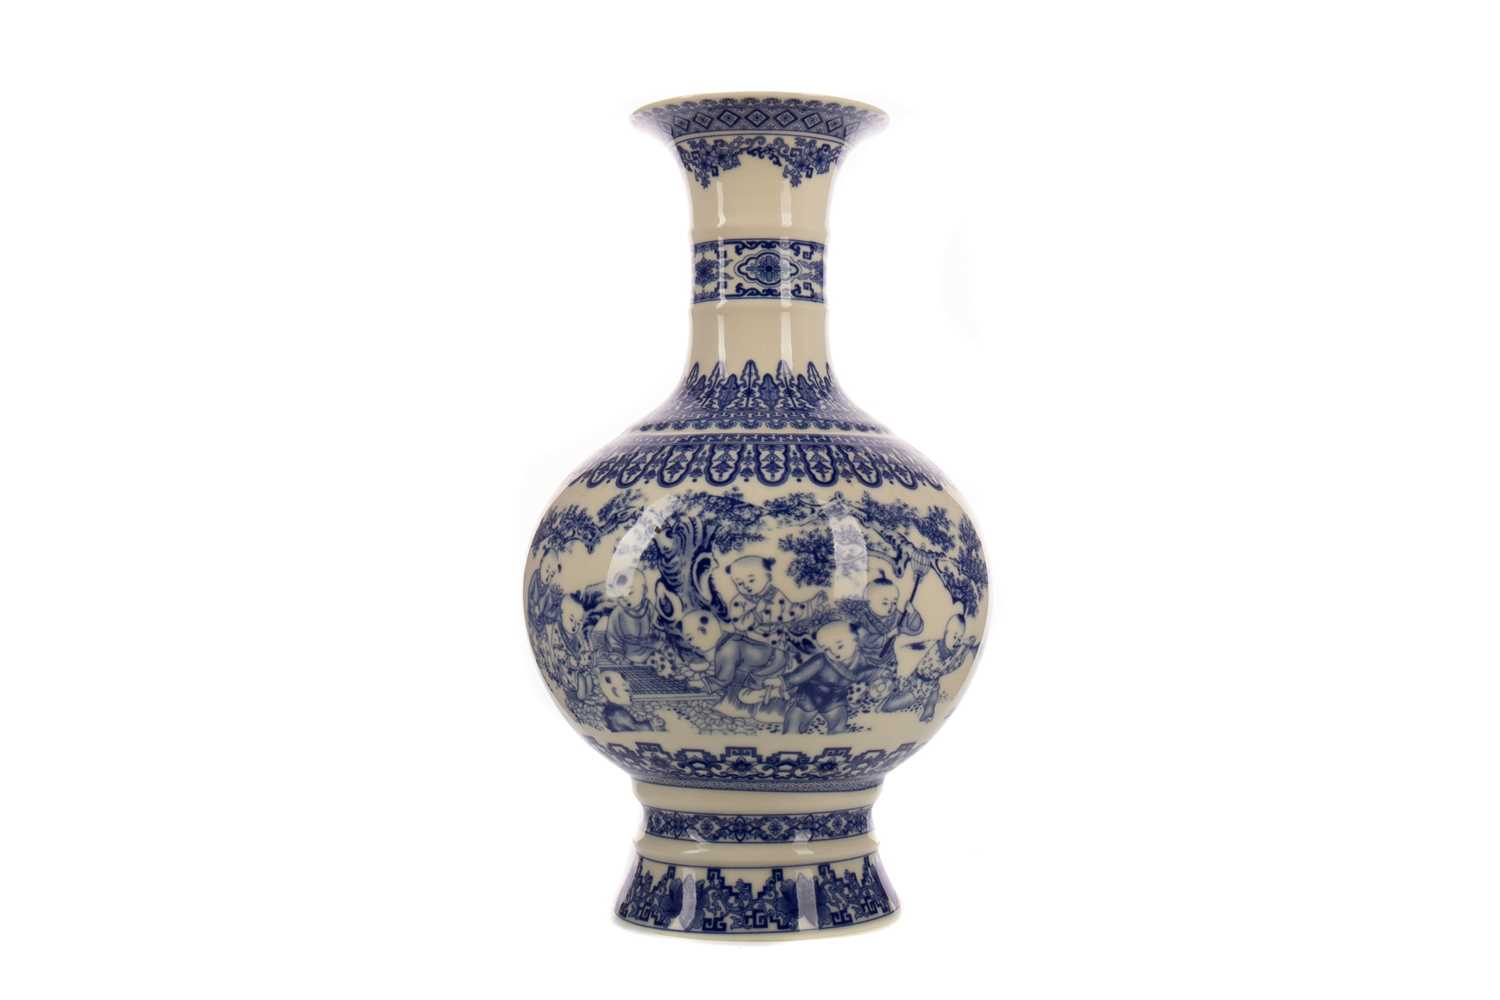 Lot 1655 - A LATE 20TH CENTURY CHINESE BLUE AND WHITE VASE